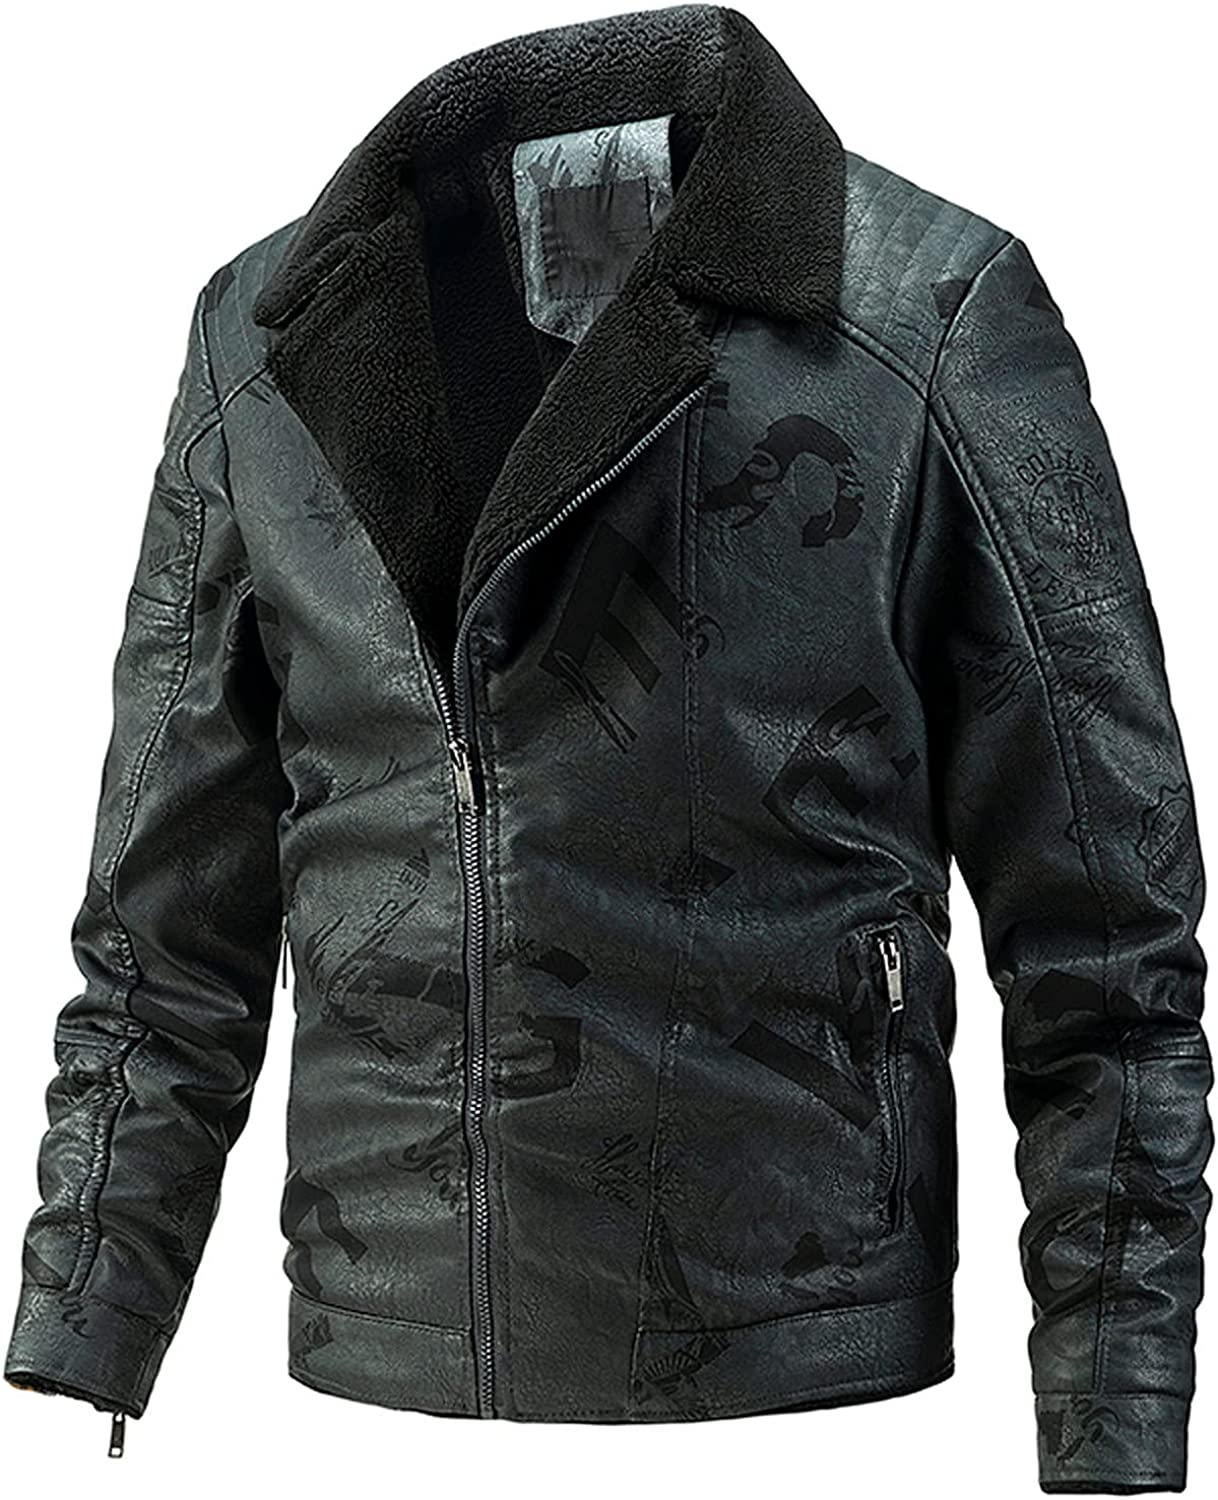 Beshion Men Casual Sherpa Winter Warm Jacket Lined Fur Faux Leather Jacket Collar Quilted Biker Coat with Zipper Pockets